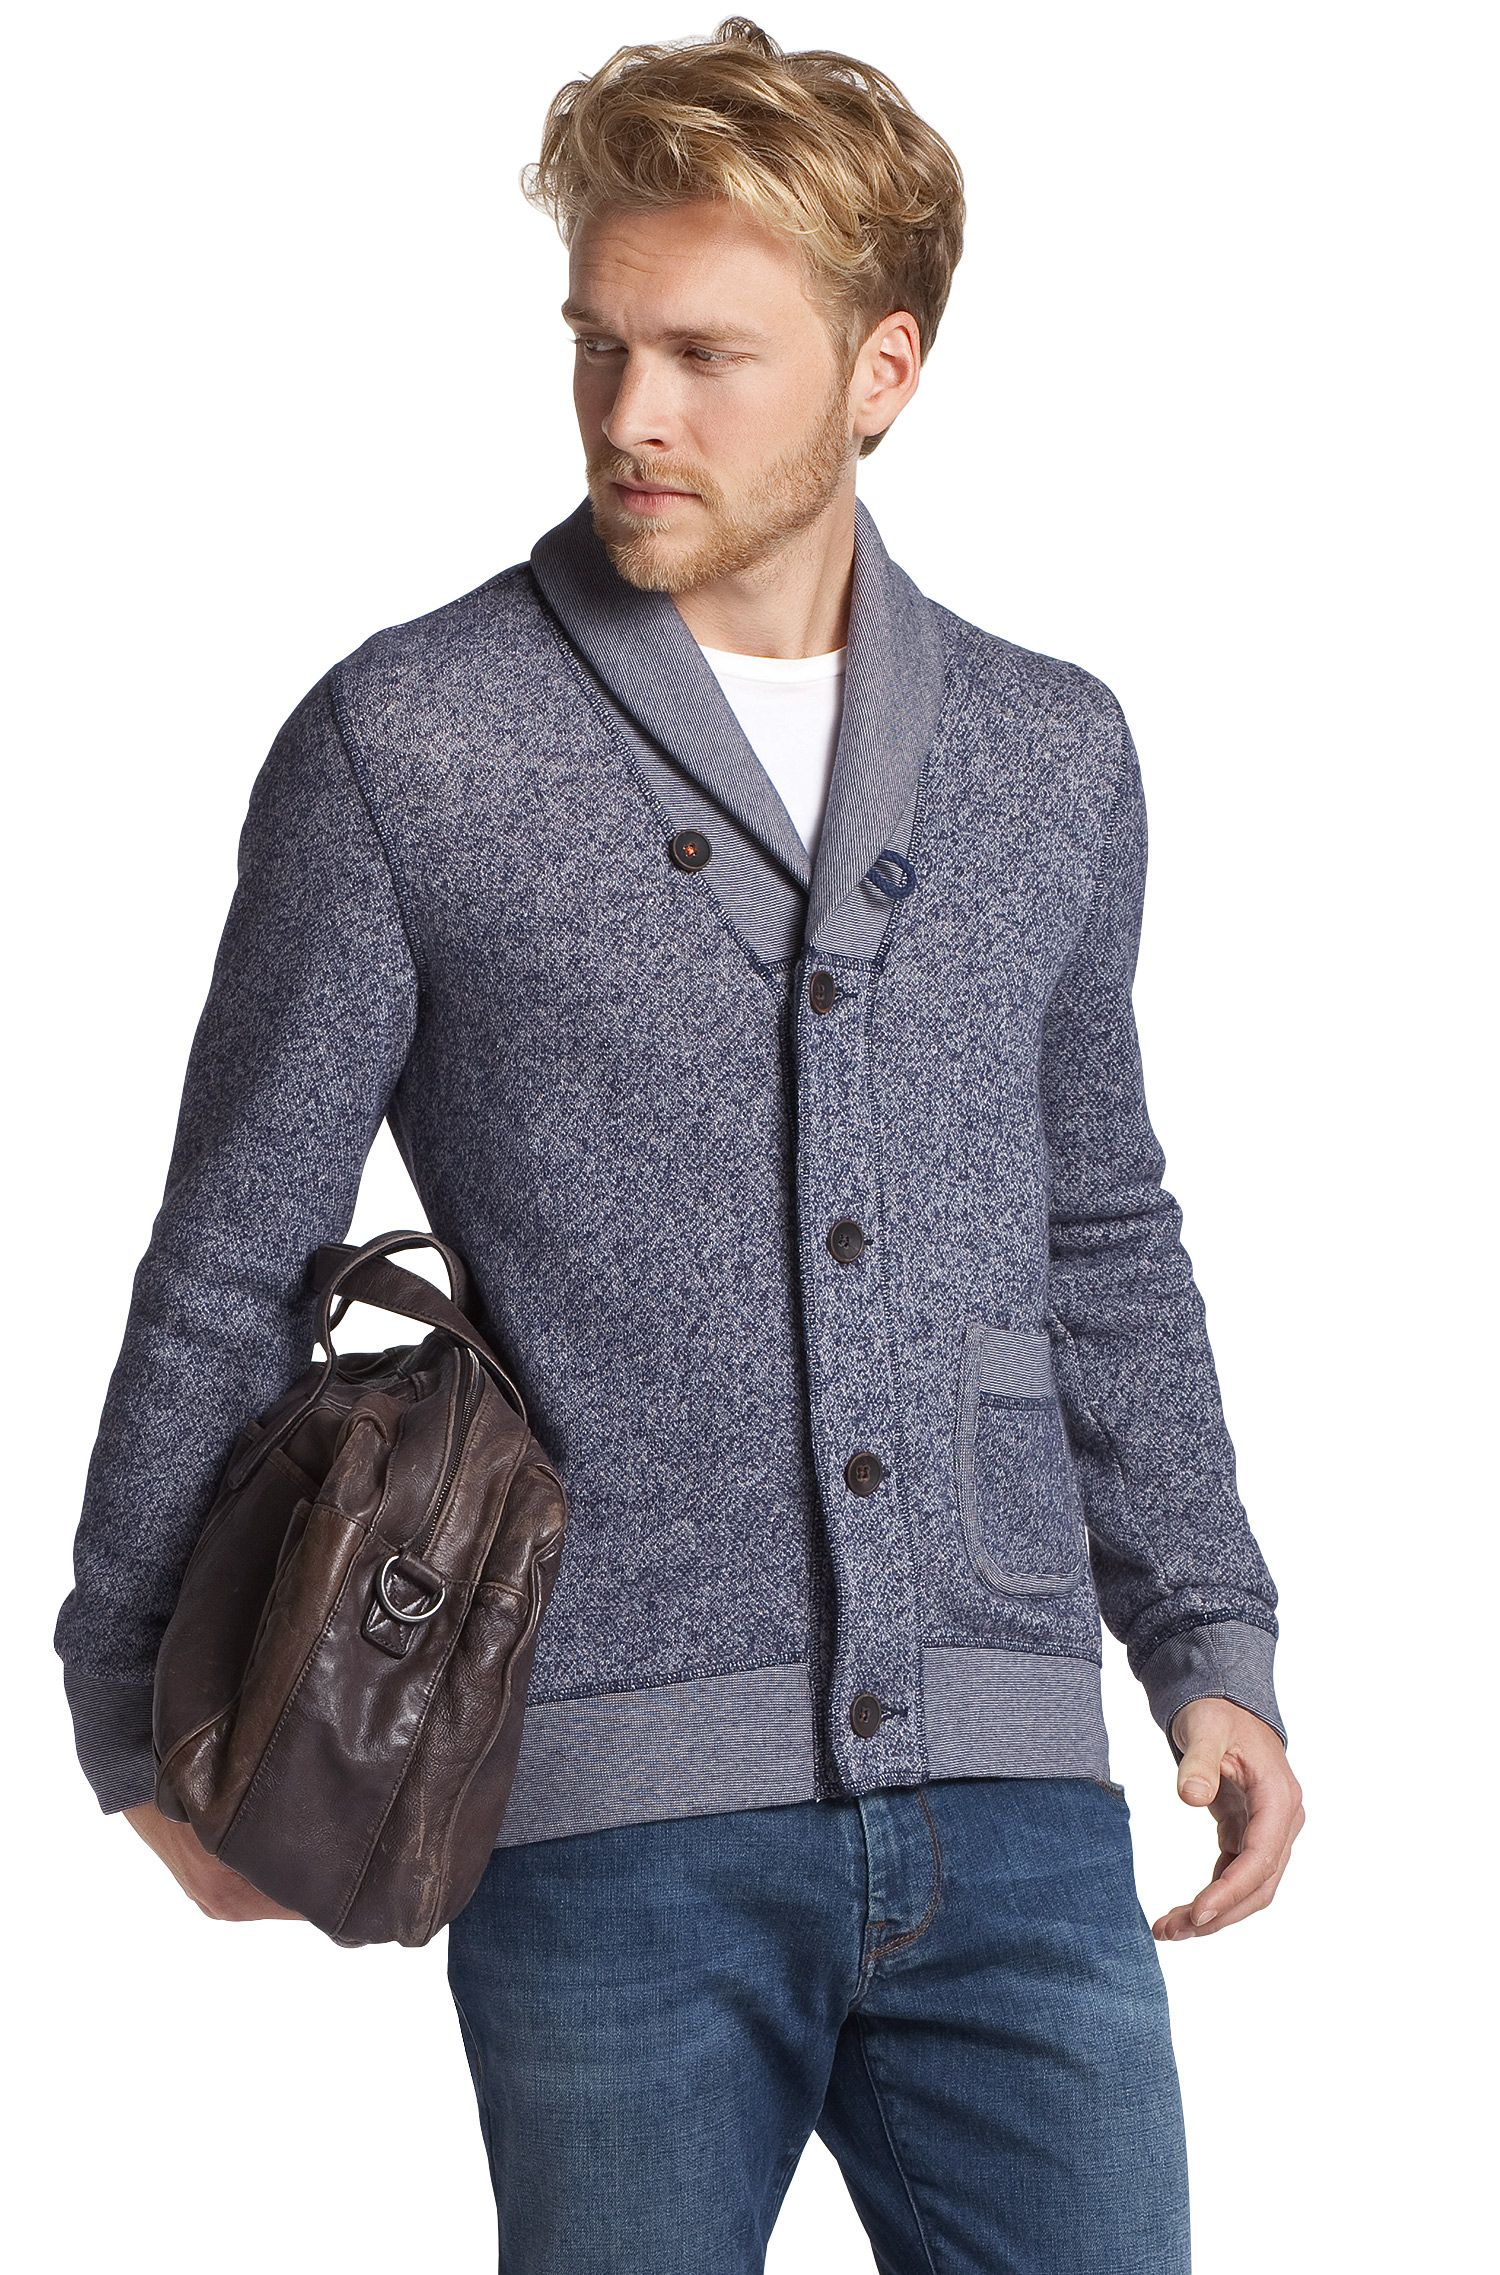 Cardigan ´Wealthy` mit Schalkragen